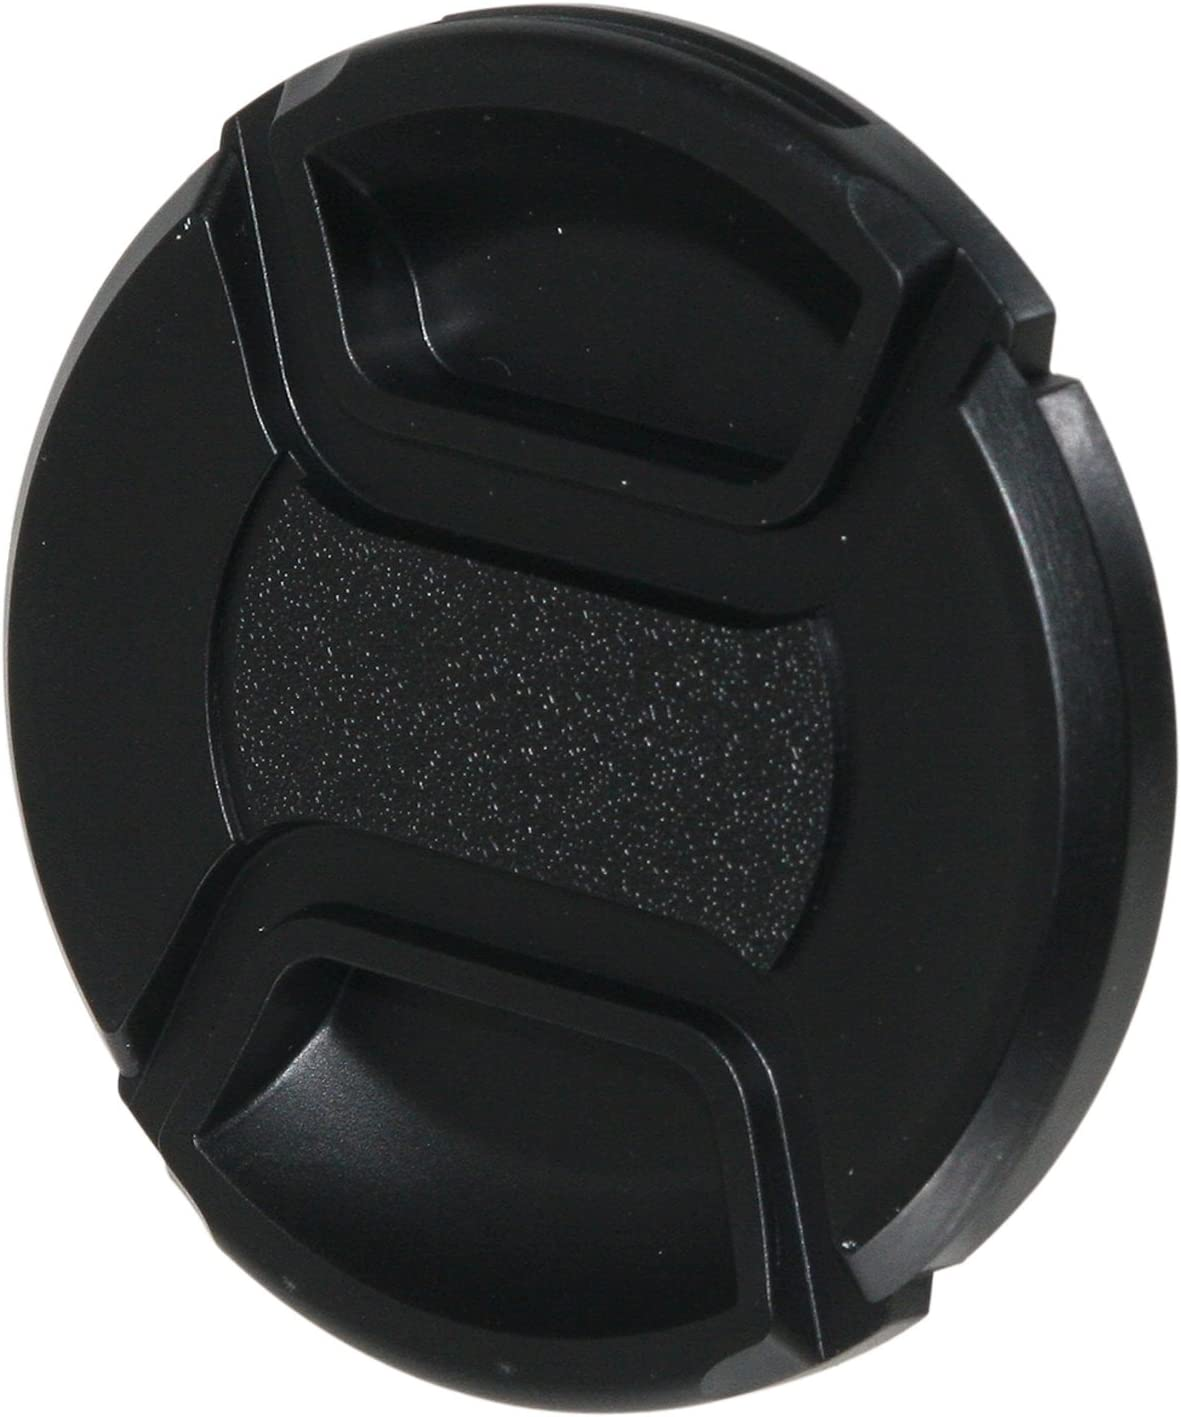 AGFA Snap On Lens Cap Store with 77mm Spasm price Double-Action Design Spring APCA